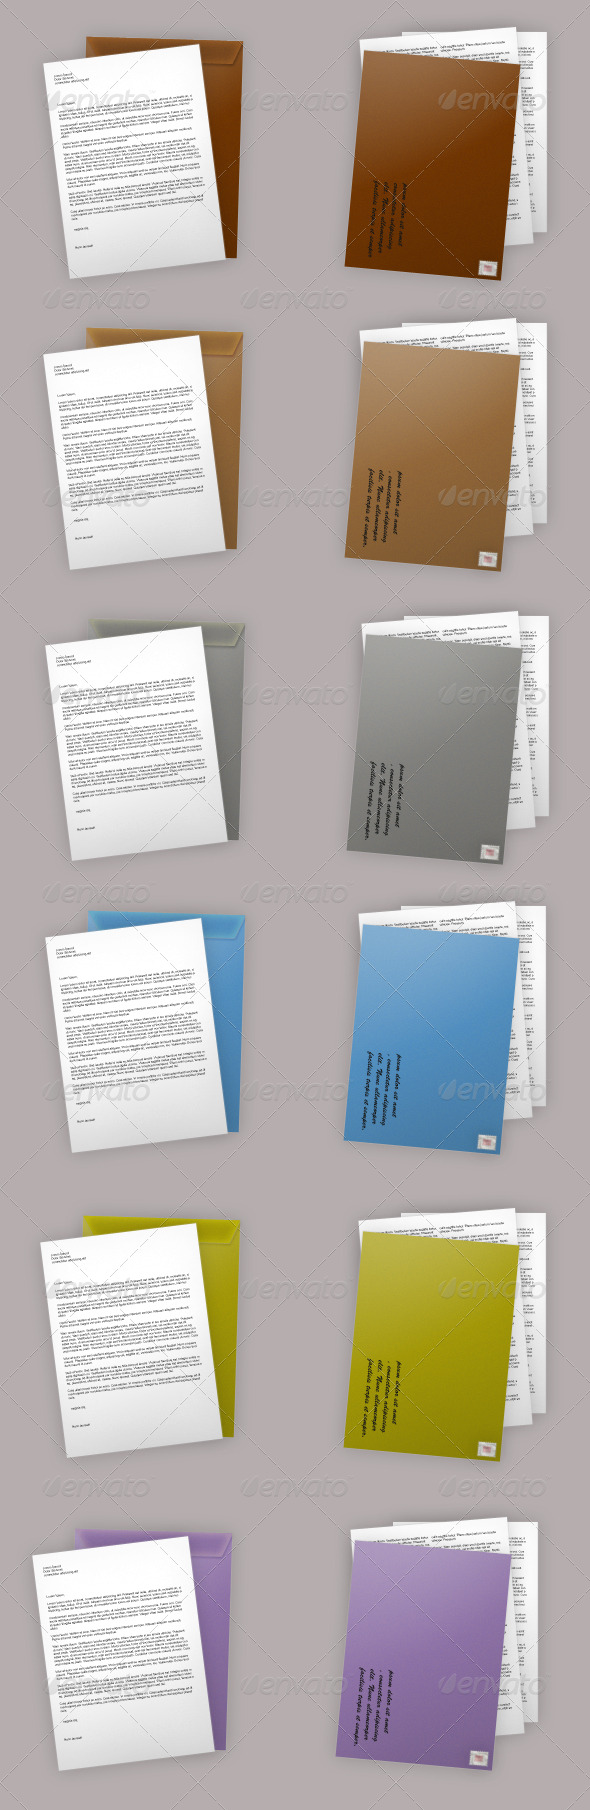 Colourful Envelope & Document icon - Miscellaneous Graphics